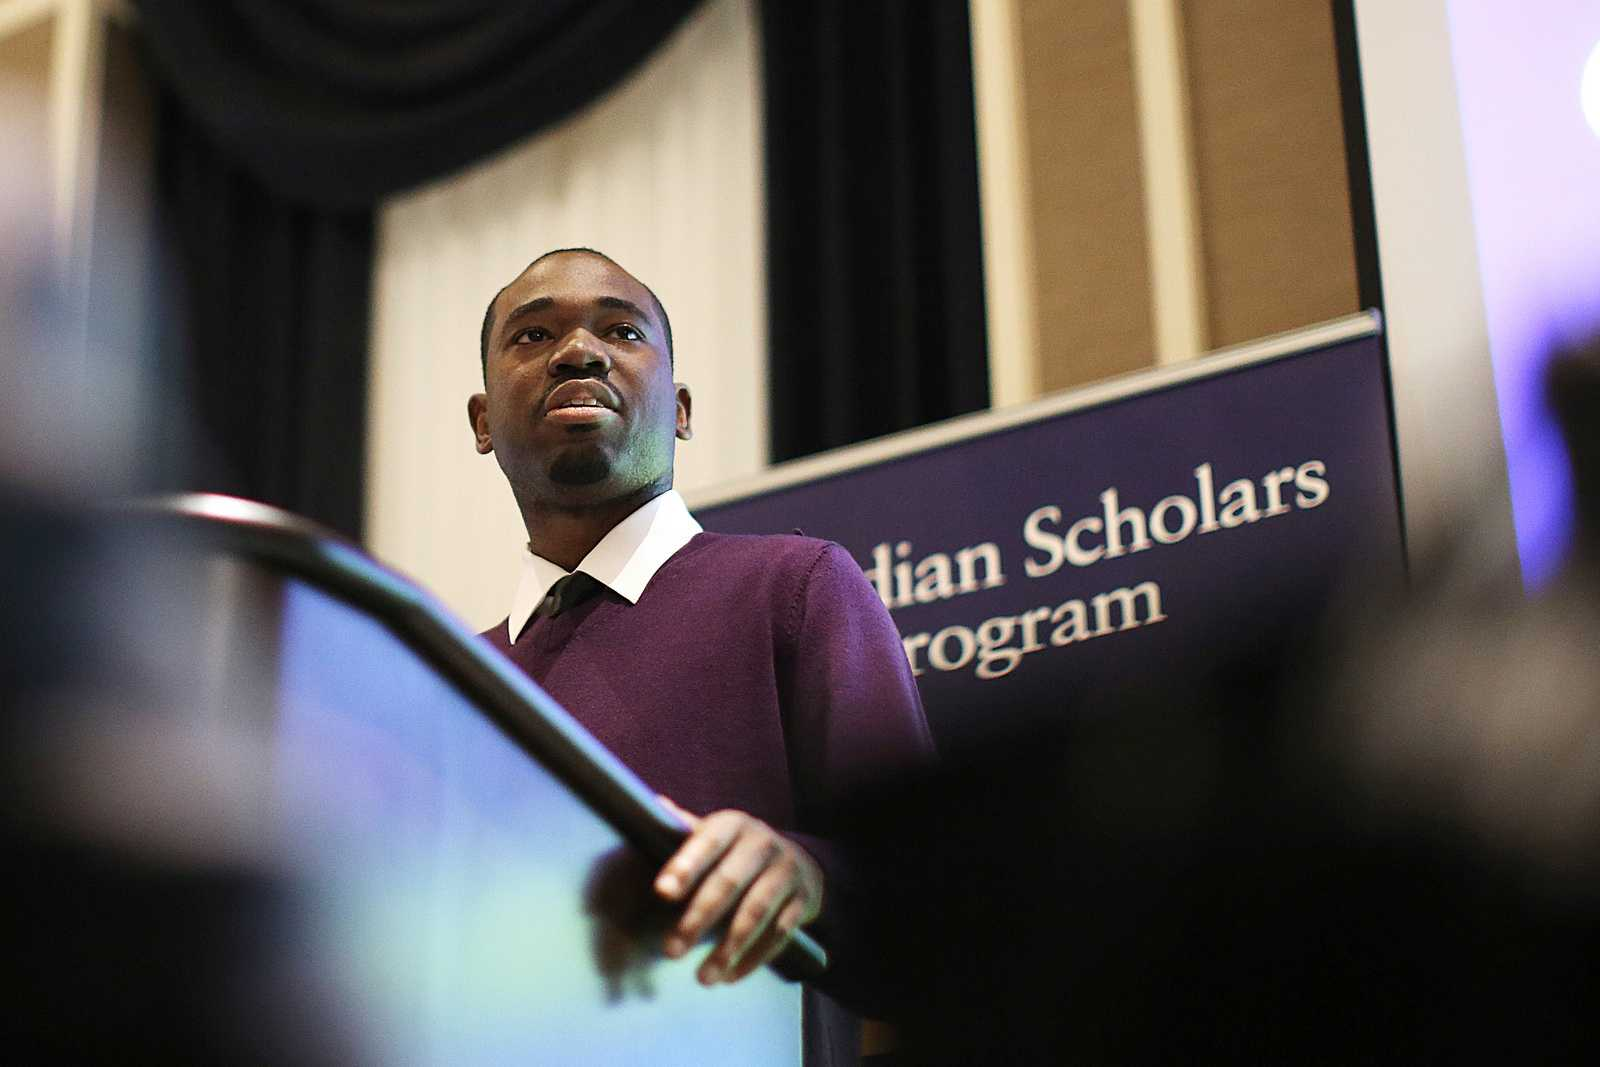 SF State student Lewis Woods, keynote speaker for the 5th annual Guardian Scholars Program Luncheon, gives a speech at the Sir Frances Drake Hotel on Oct 18. The Guardian Scholars Program is a SF State organization designed to help children in the foster care system transition into college life. Students in the Guardian Scholars Program have an 85 percent graduation rate. Photo by John Ornelas / Xpress